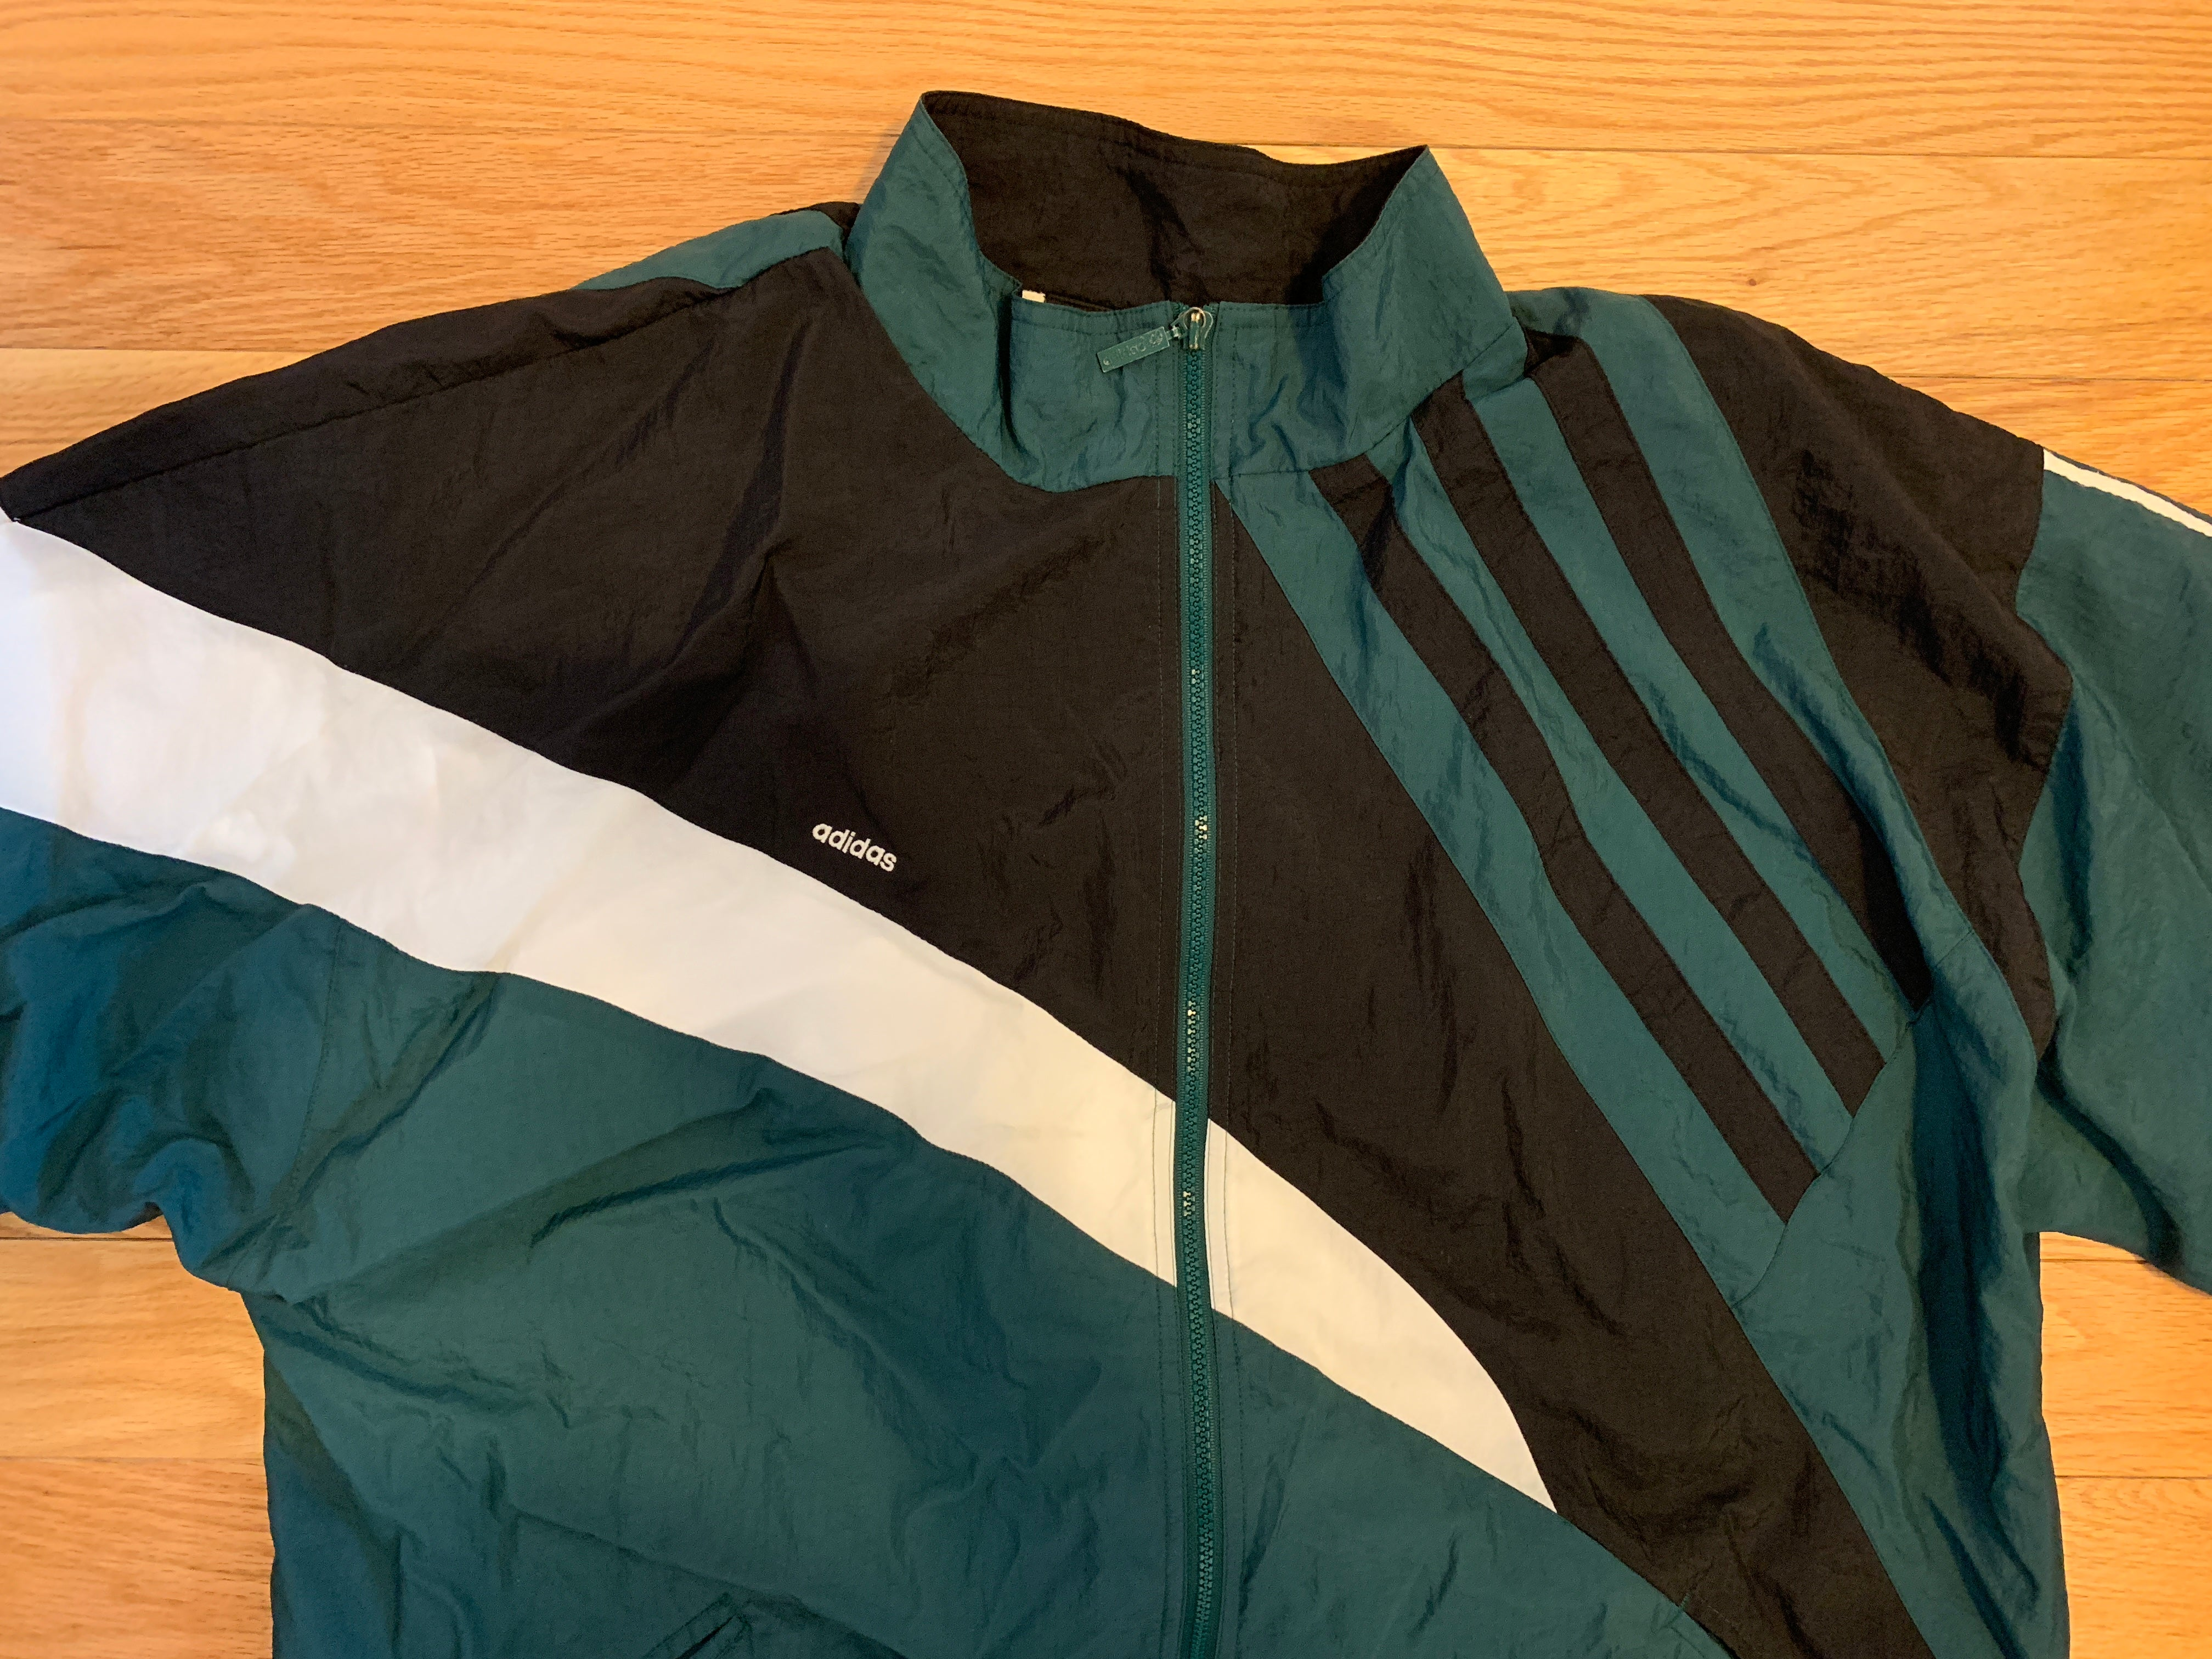 Vintage 90's Adidas Color Block Windbreaker Jacket